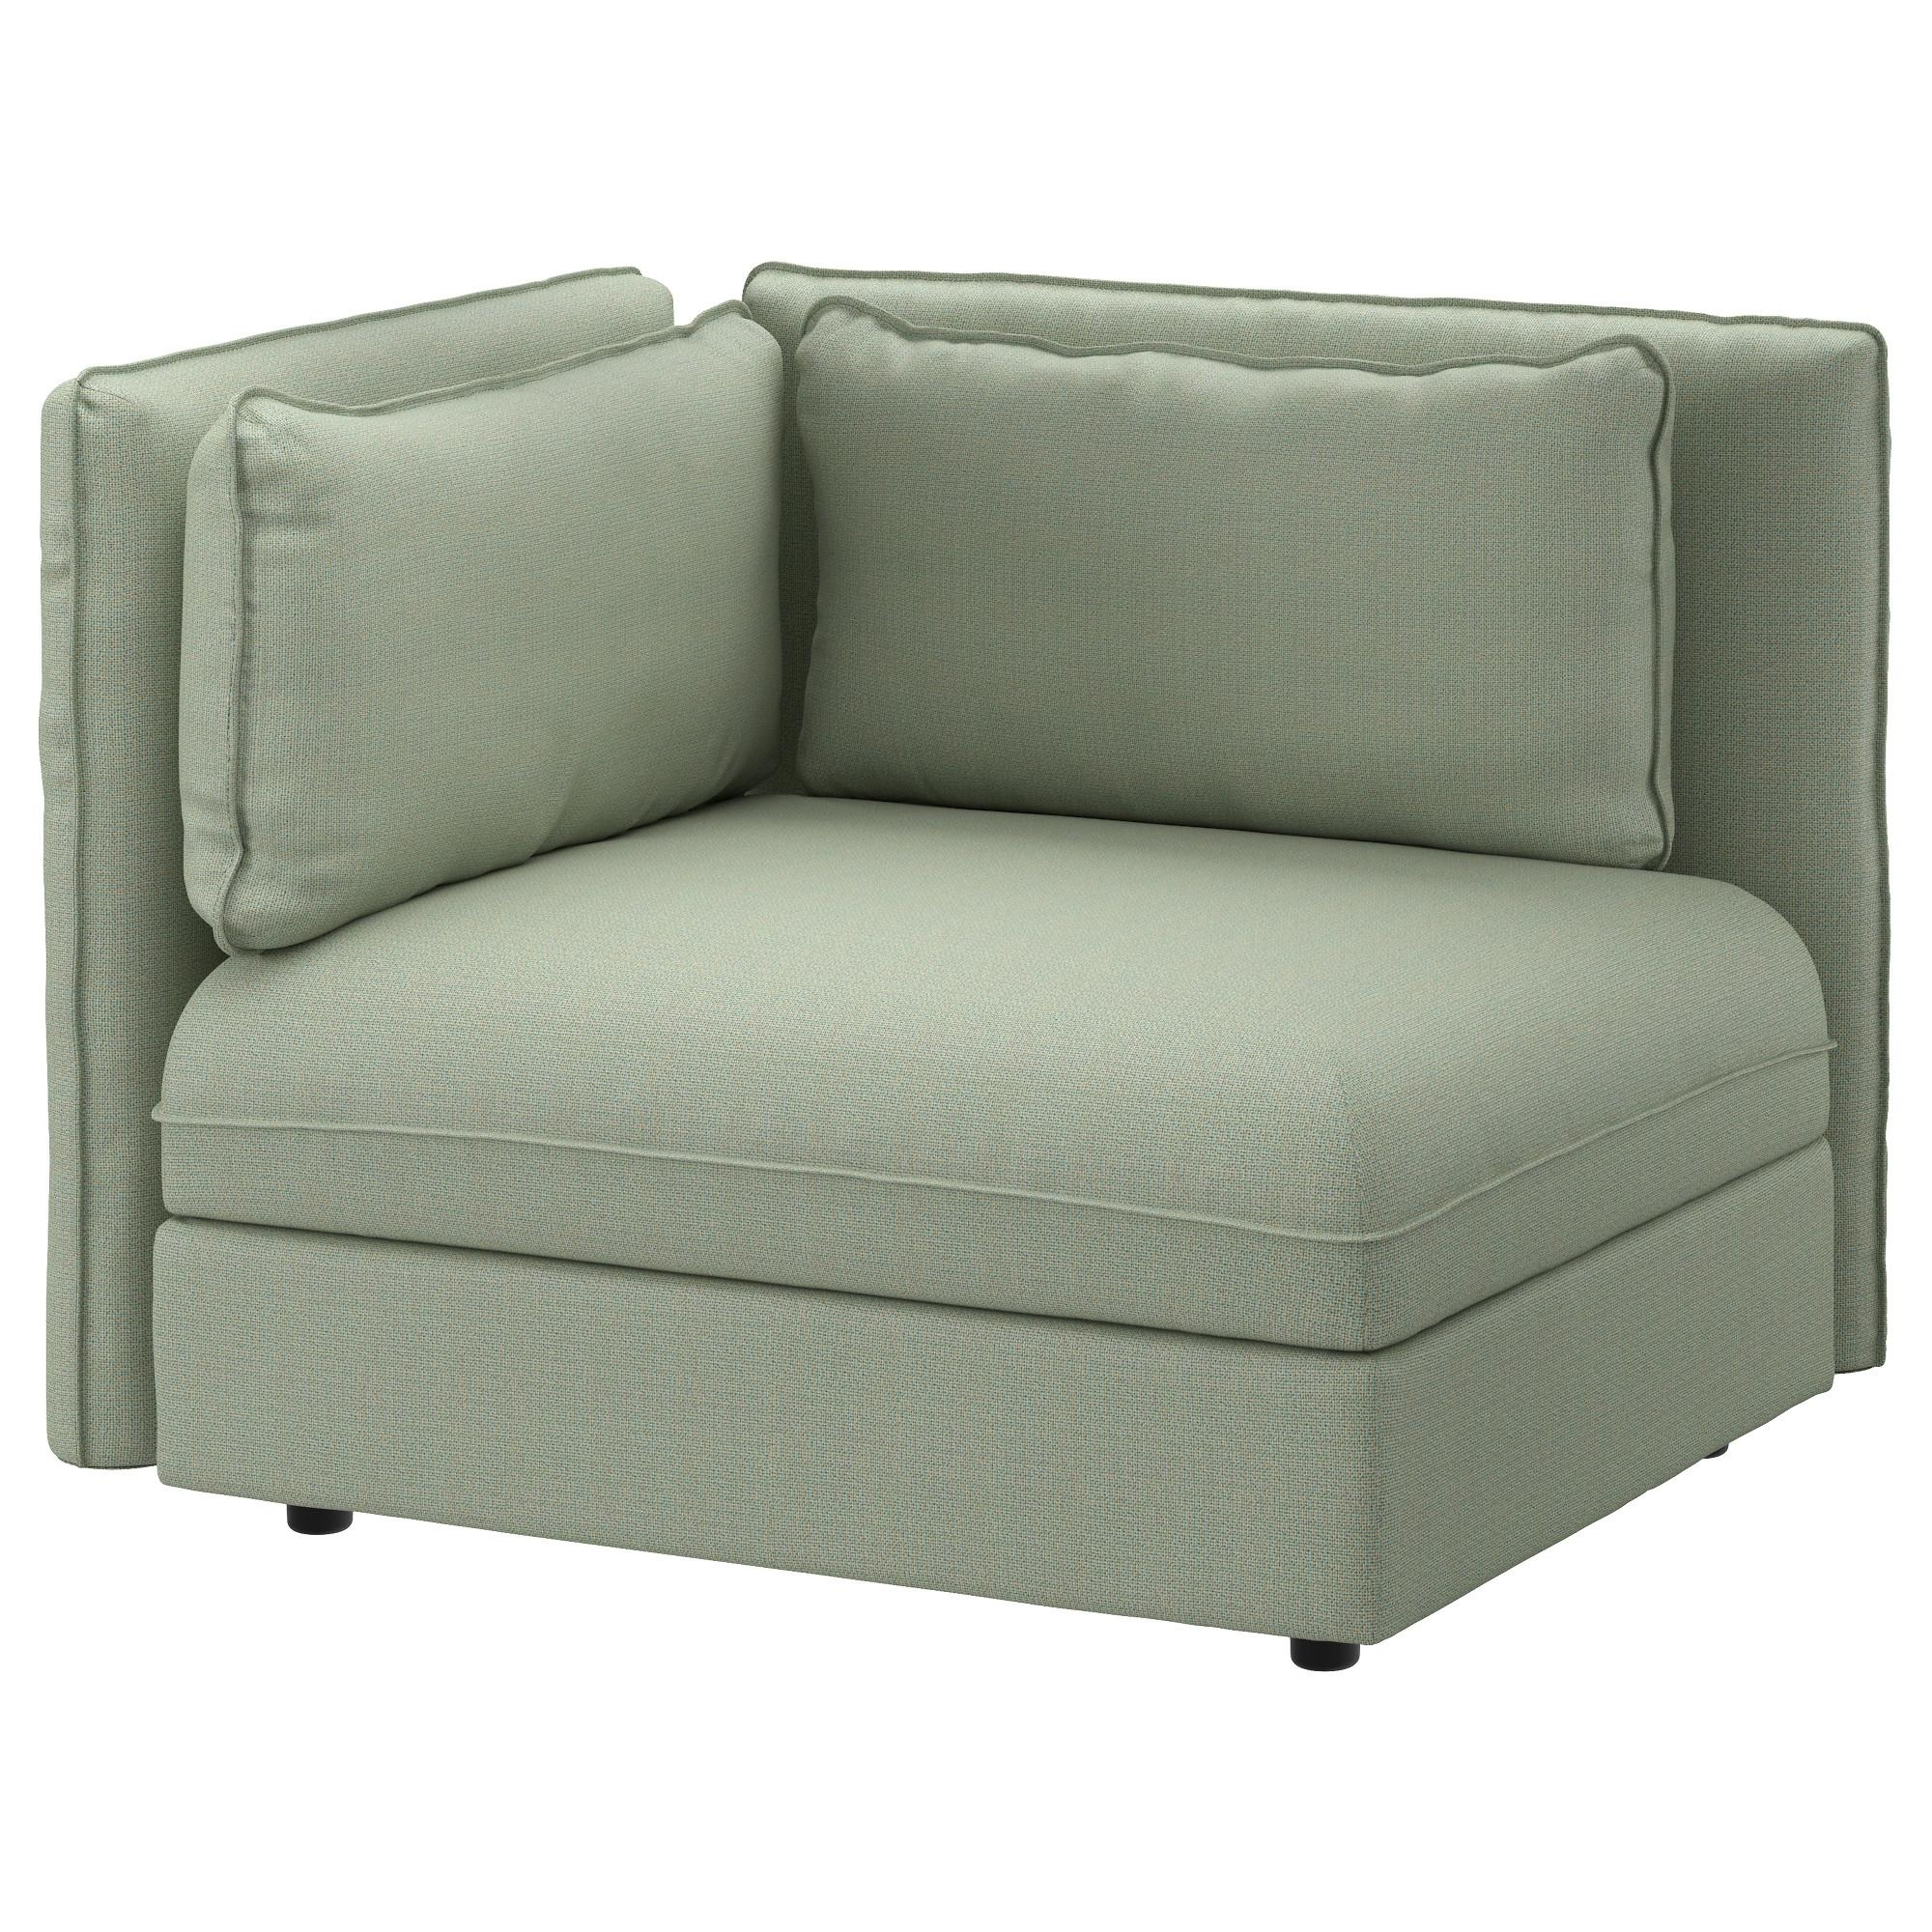 chair sleeper ikea craigslist dining room table and chairs 20 collection of sectional sofa ideas